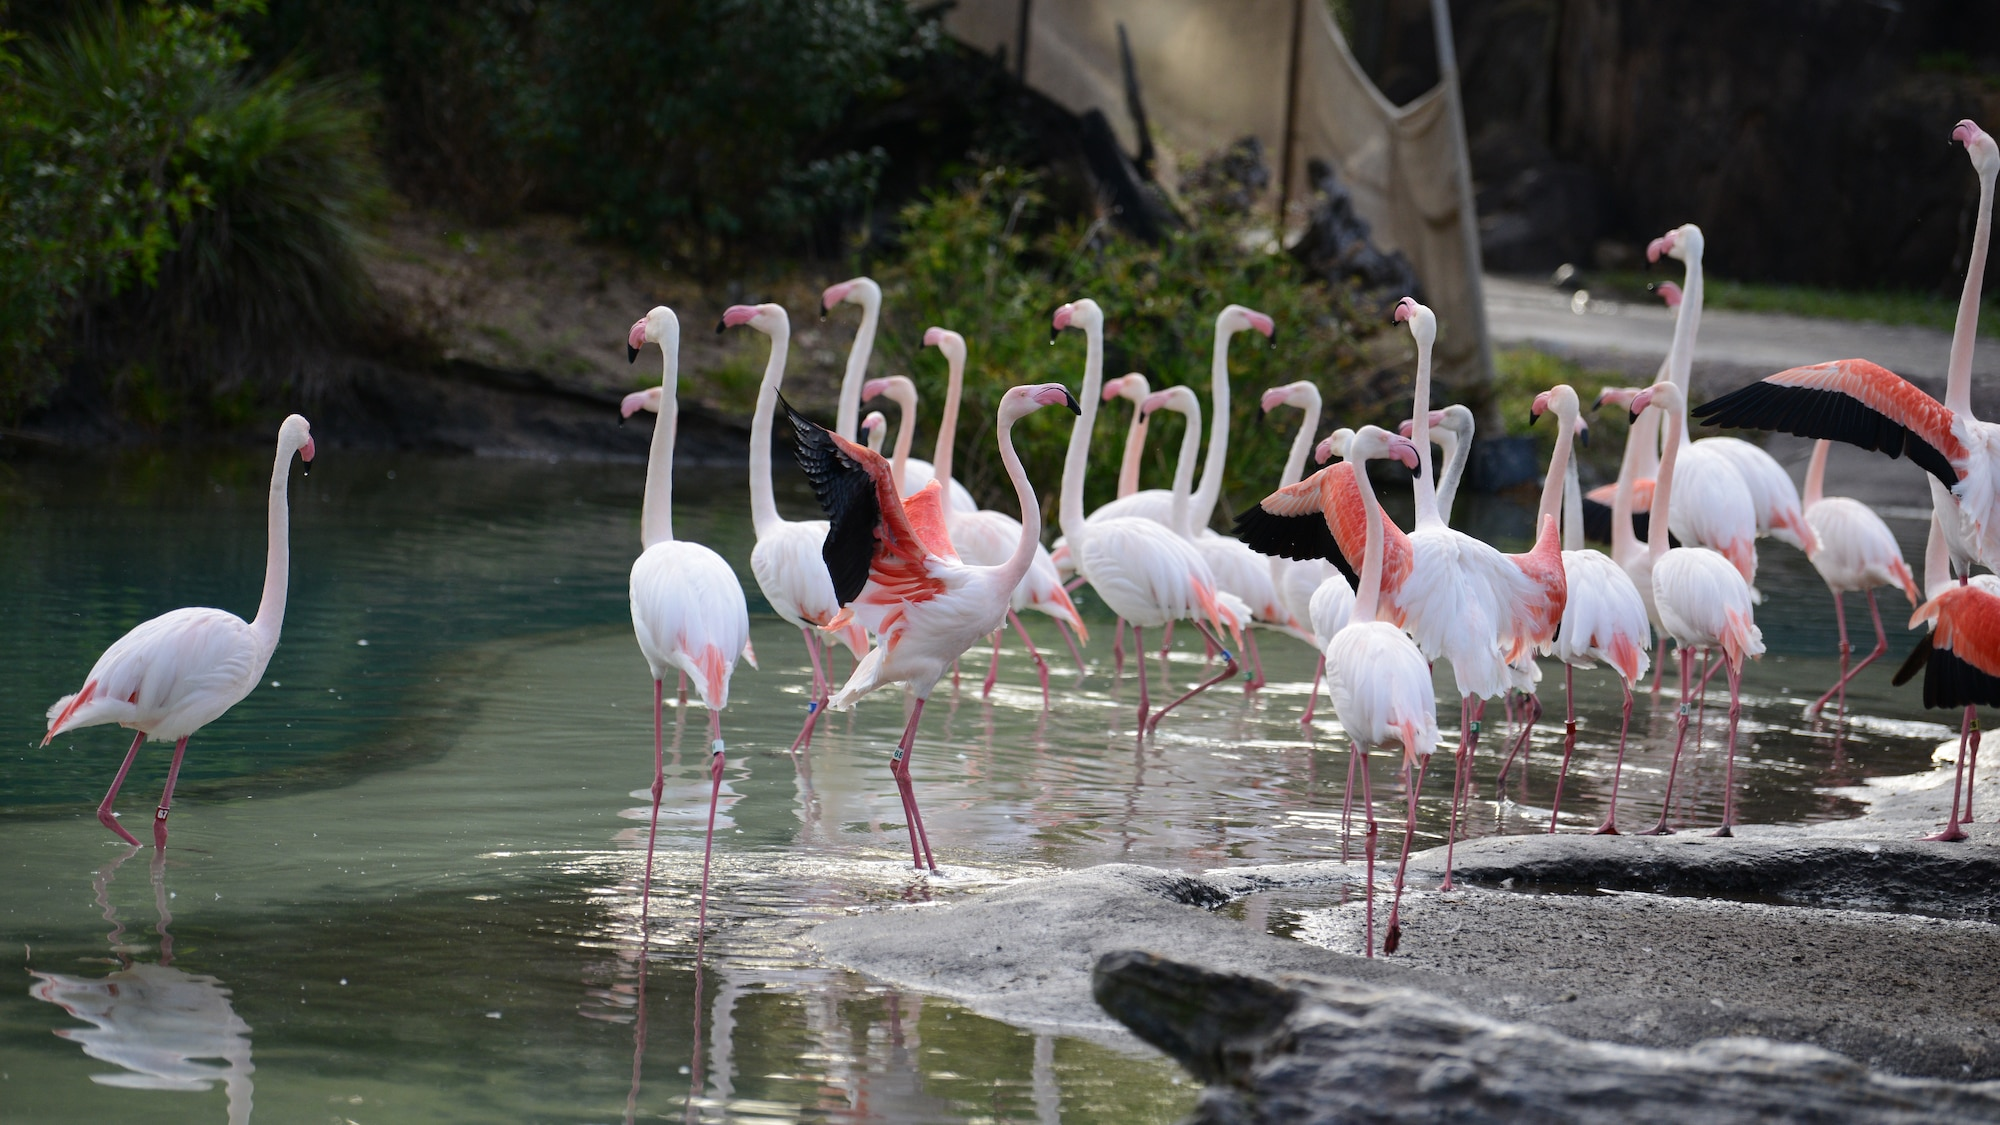 A group of flamingos, also know as a flamboyance, at Kilimanjaro Safari. (National Geographic/Gene Page)